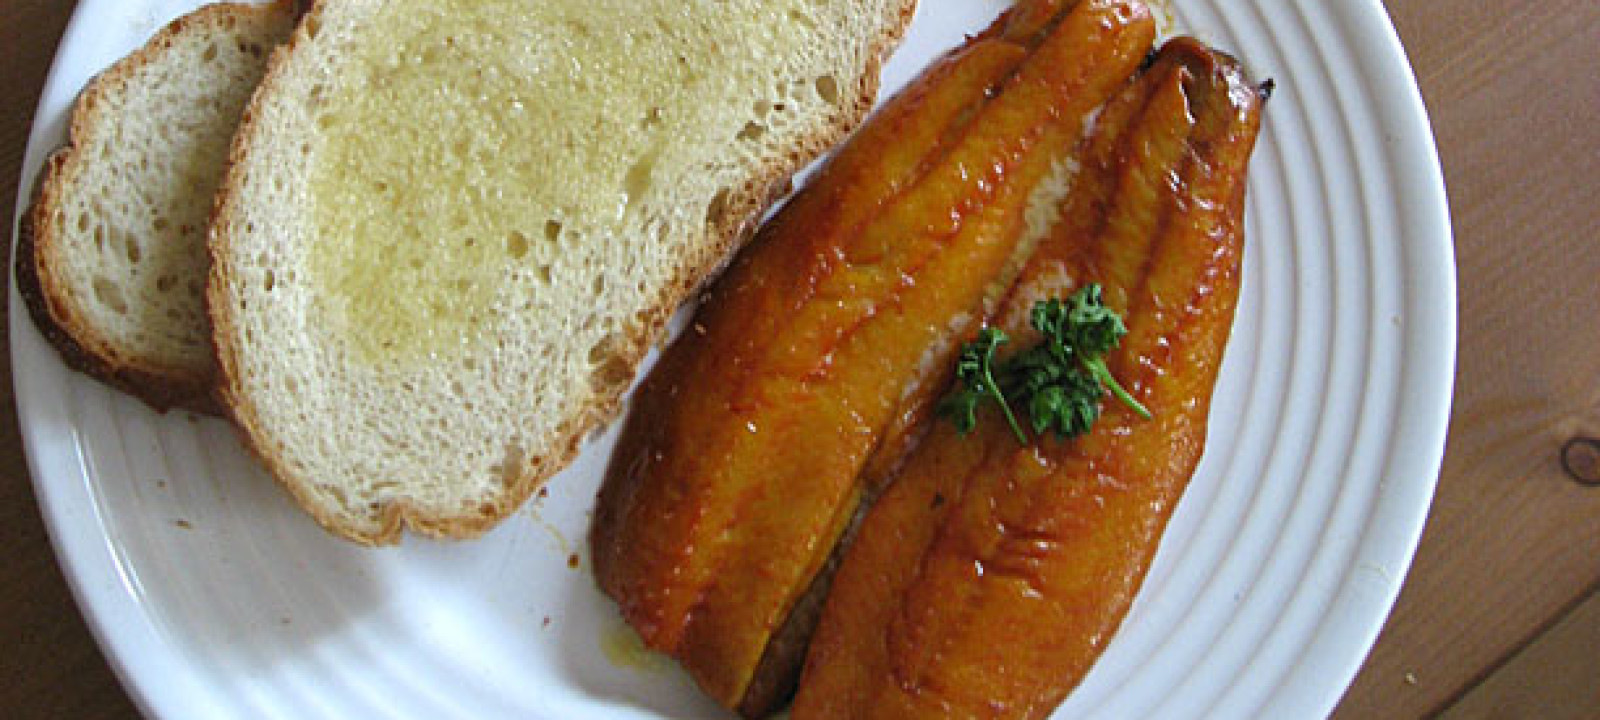 Kippers and toast (Pic: Kai Hendry)